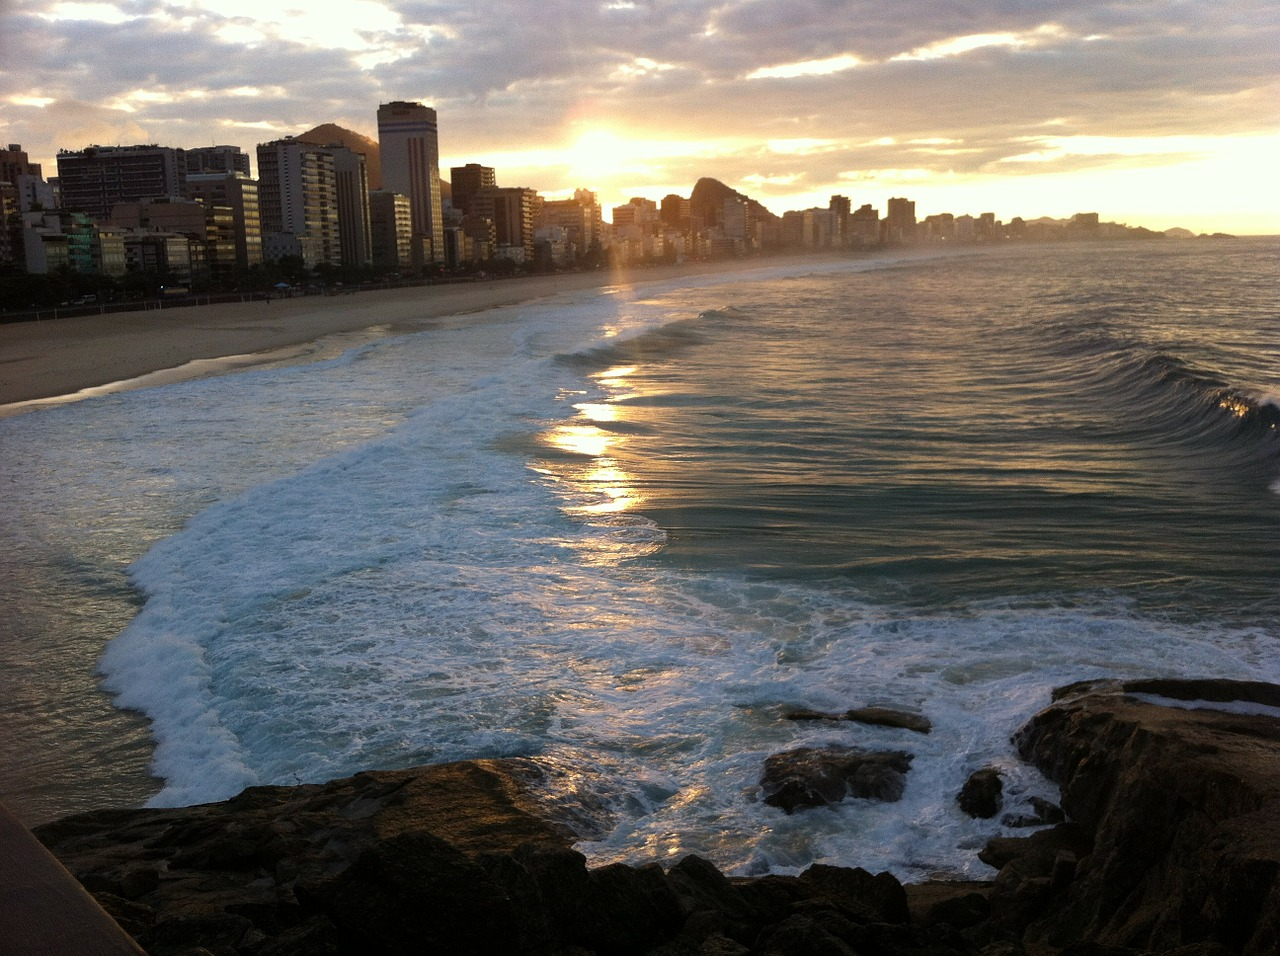 In What City Would You Find Copacabana Beach